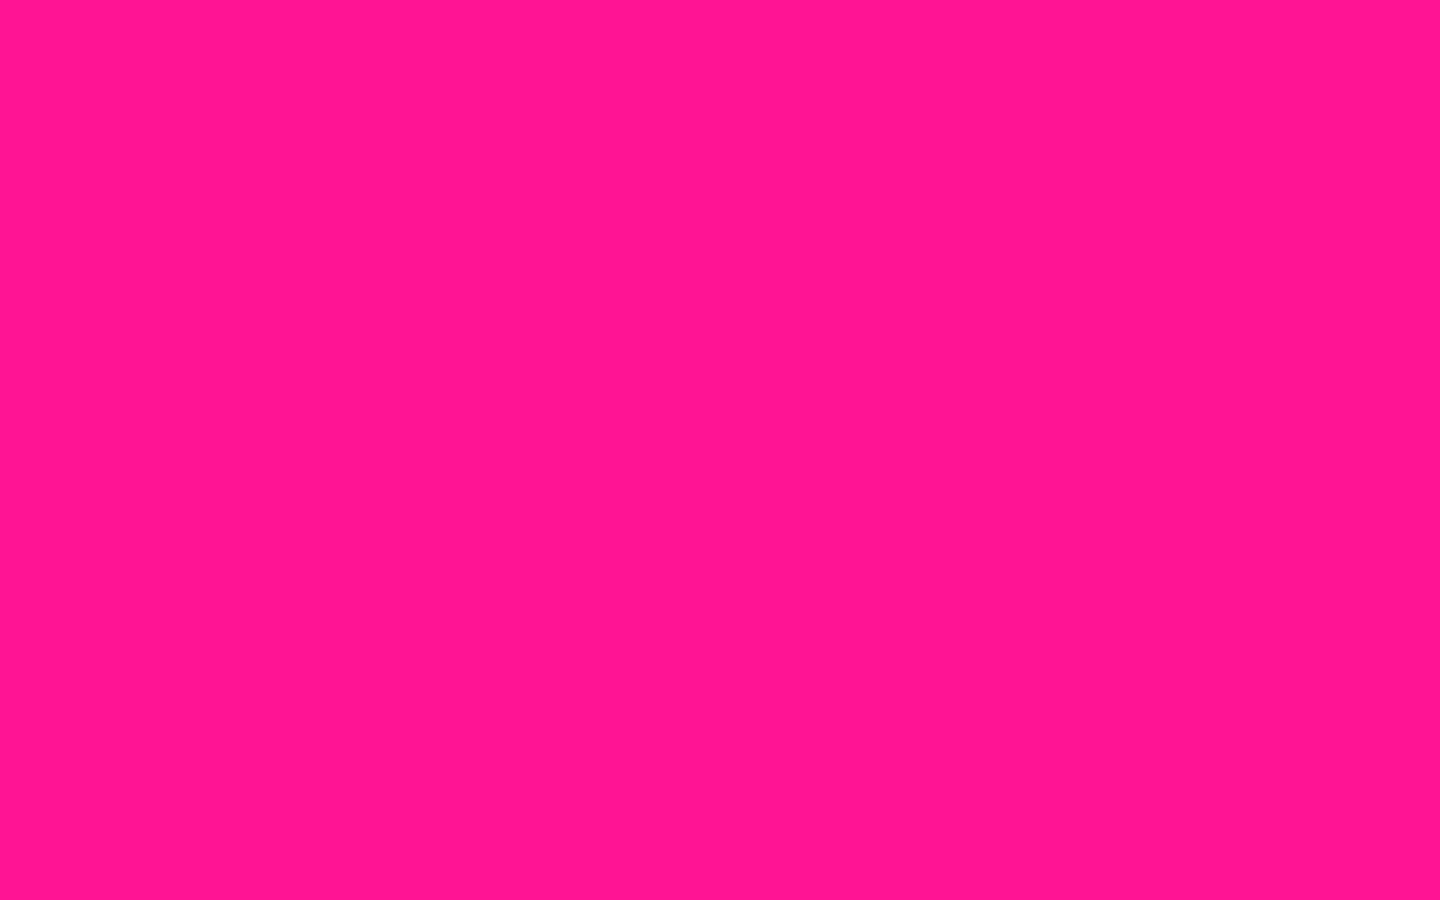 1440x900 Fluorescent Pink Solid Color Background